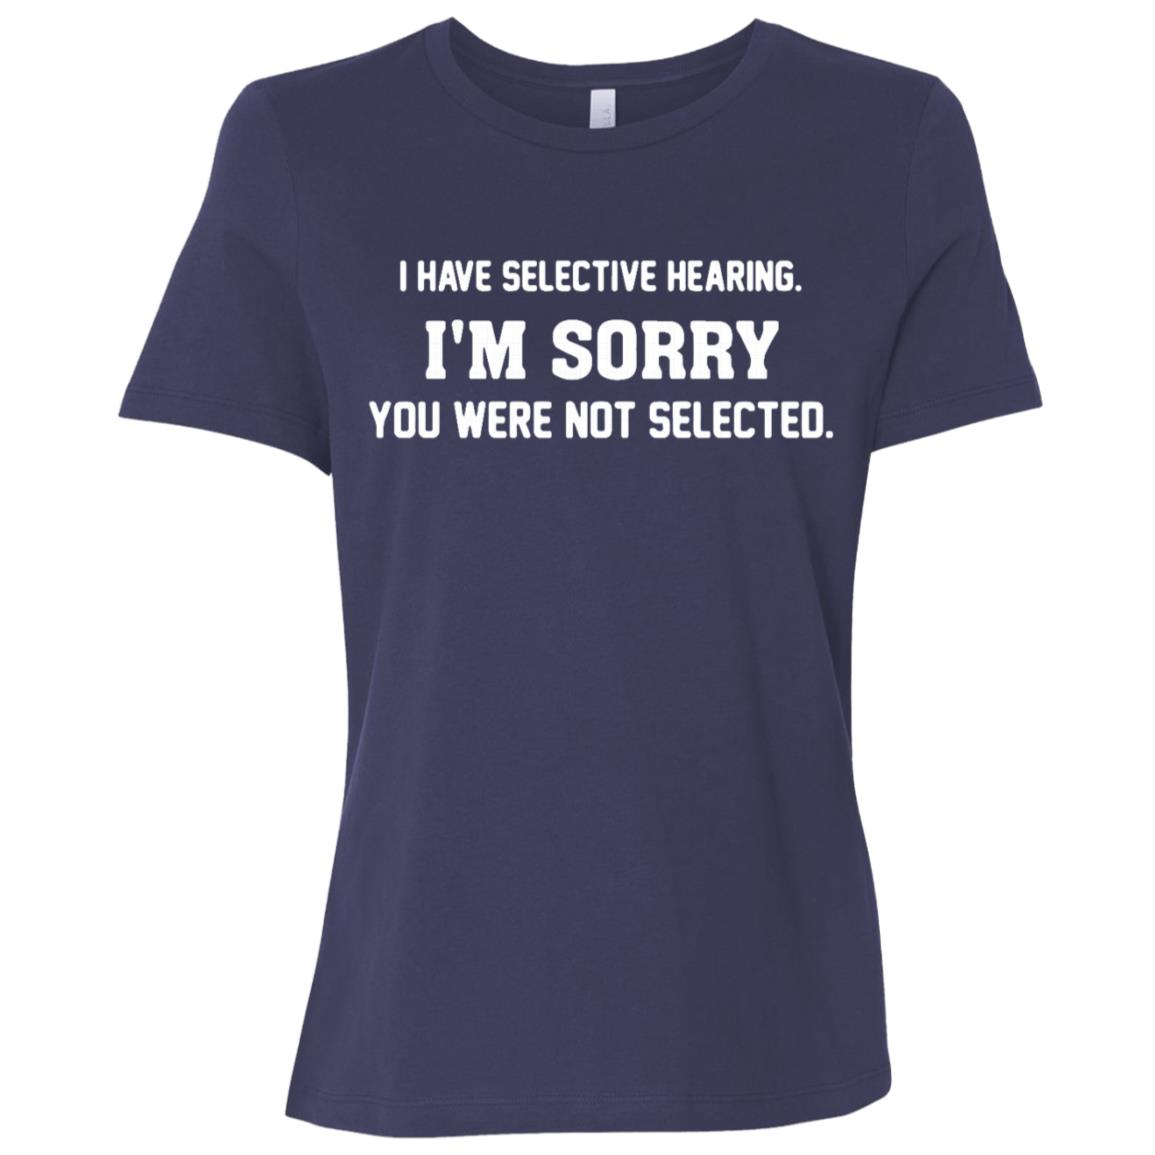 Funny-I-Have-Selective-Hearing-Im-Sorry-Not-Selected Women Short Sleeve T-Shirt